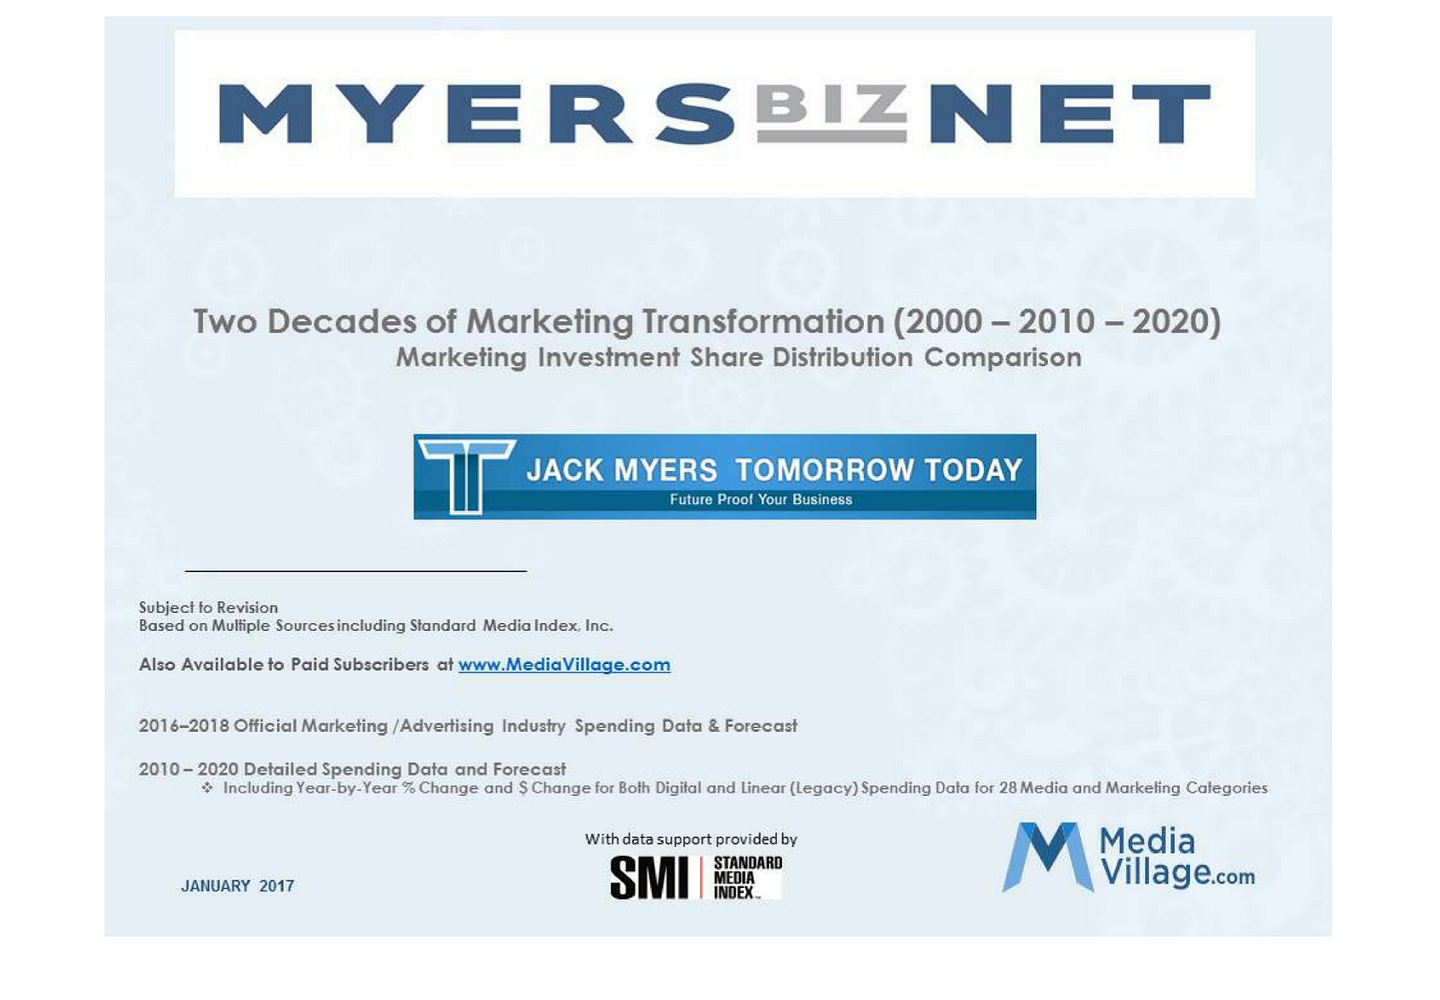 2020 Economic Forecast: Two Decades of Marketing Transformation